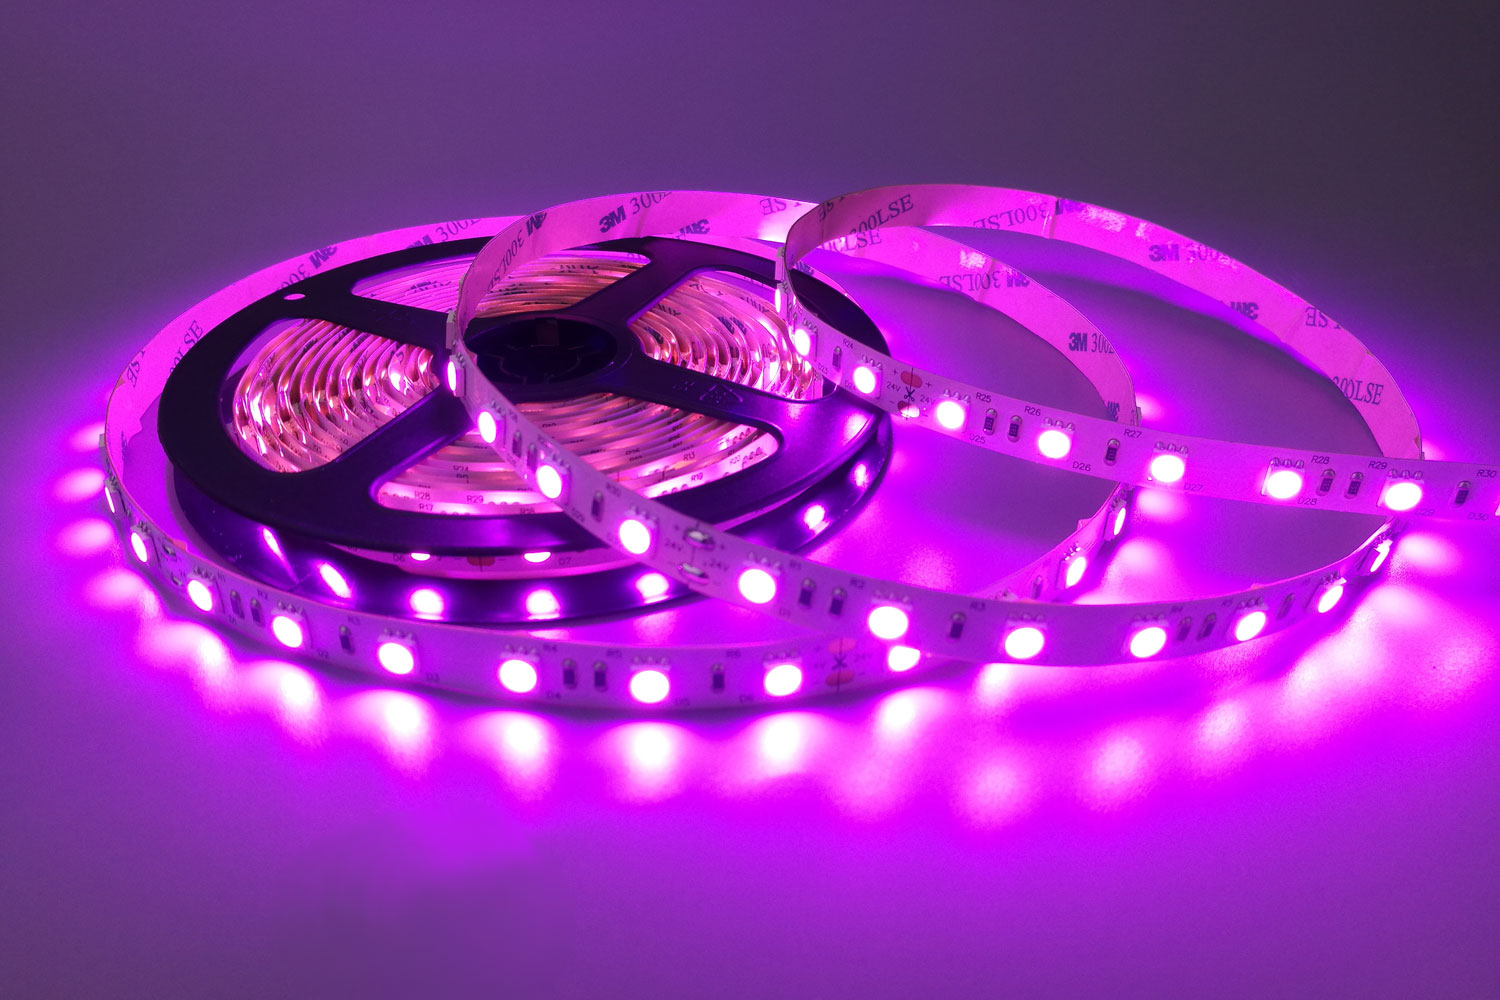 DeRun high-quality uv led strip order now-1